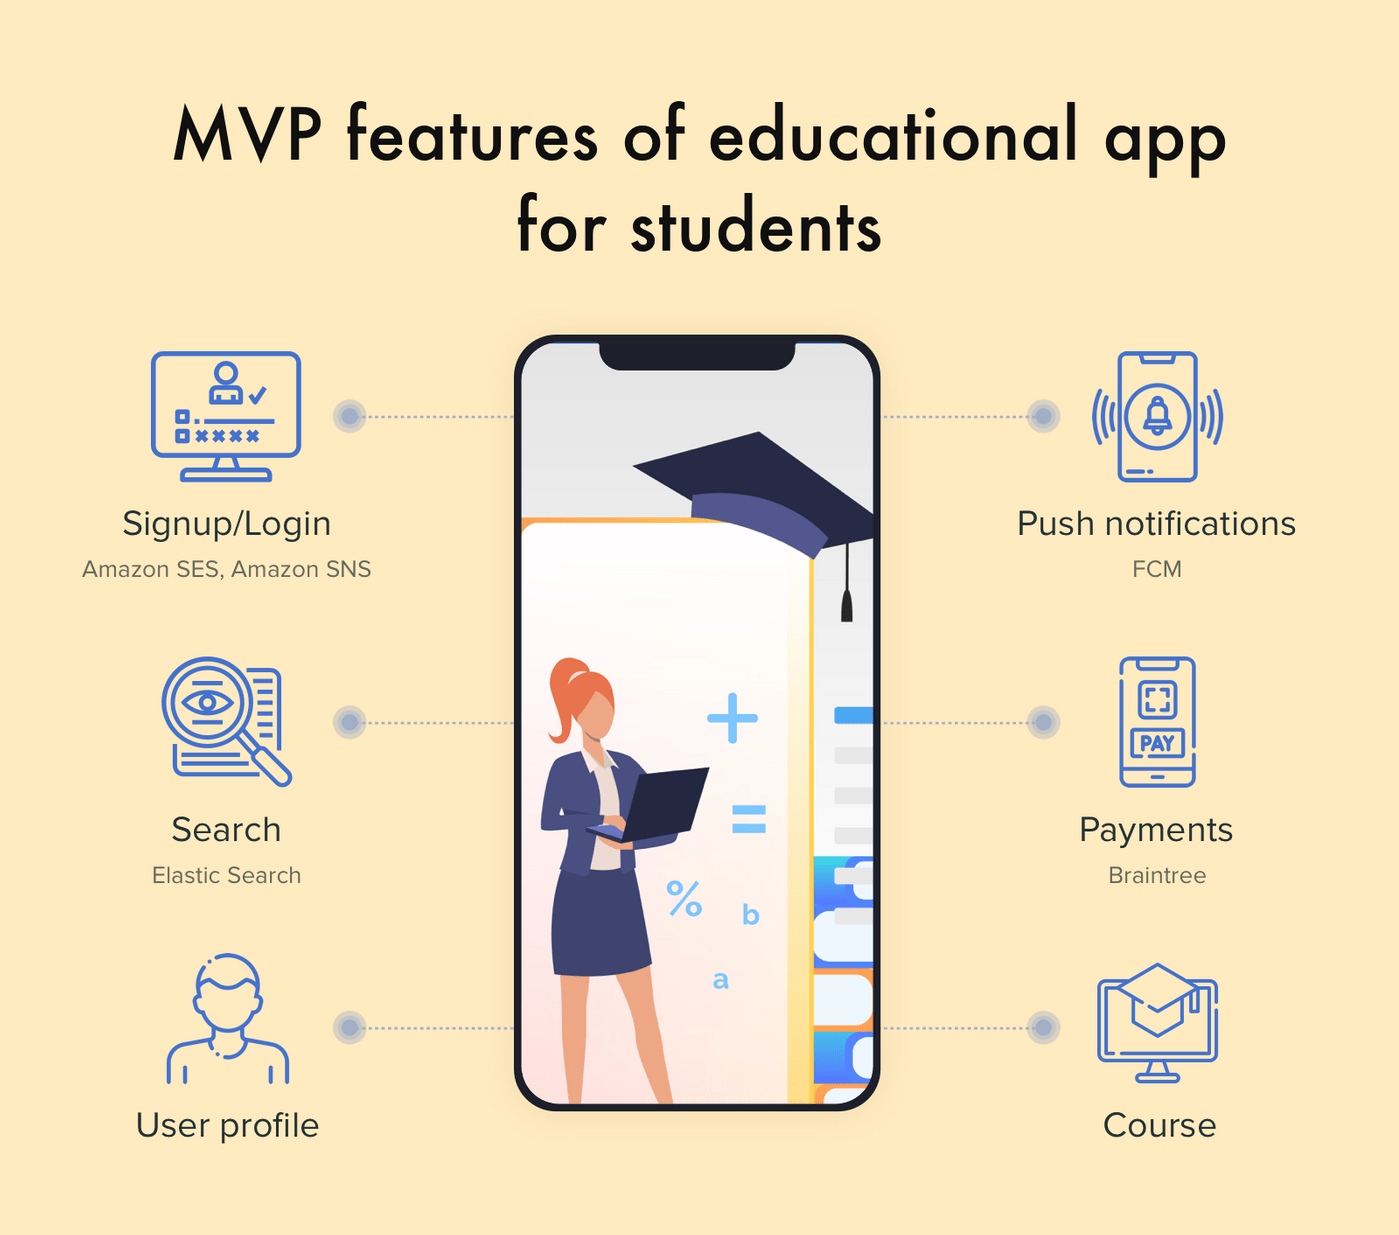 Education app features